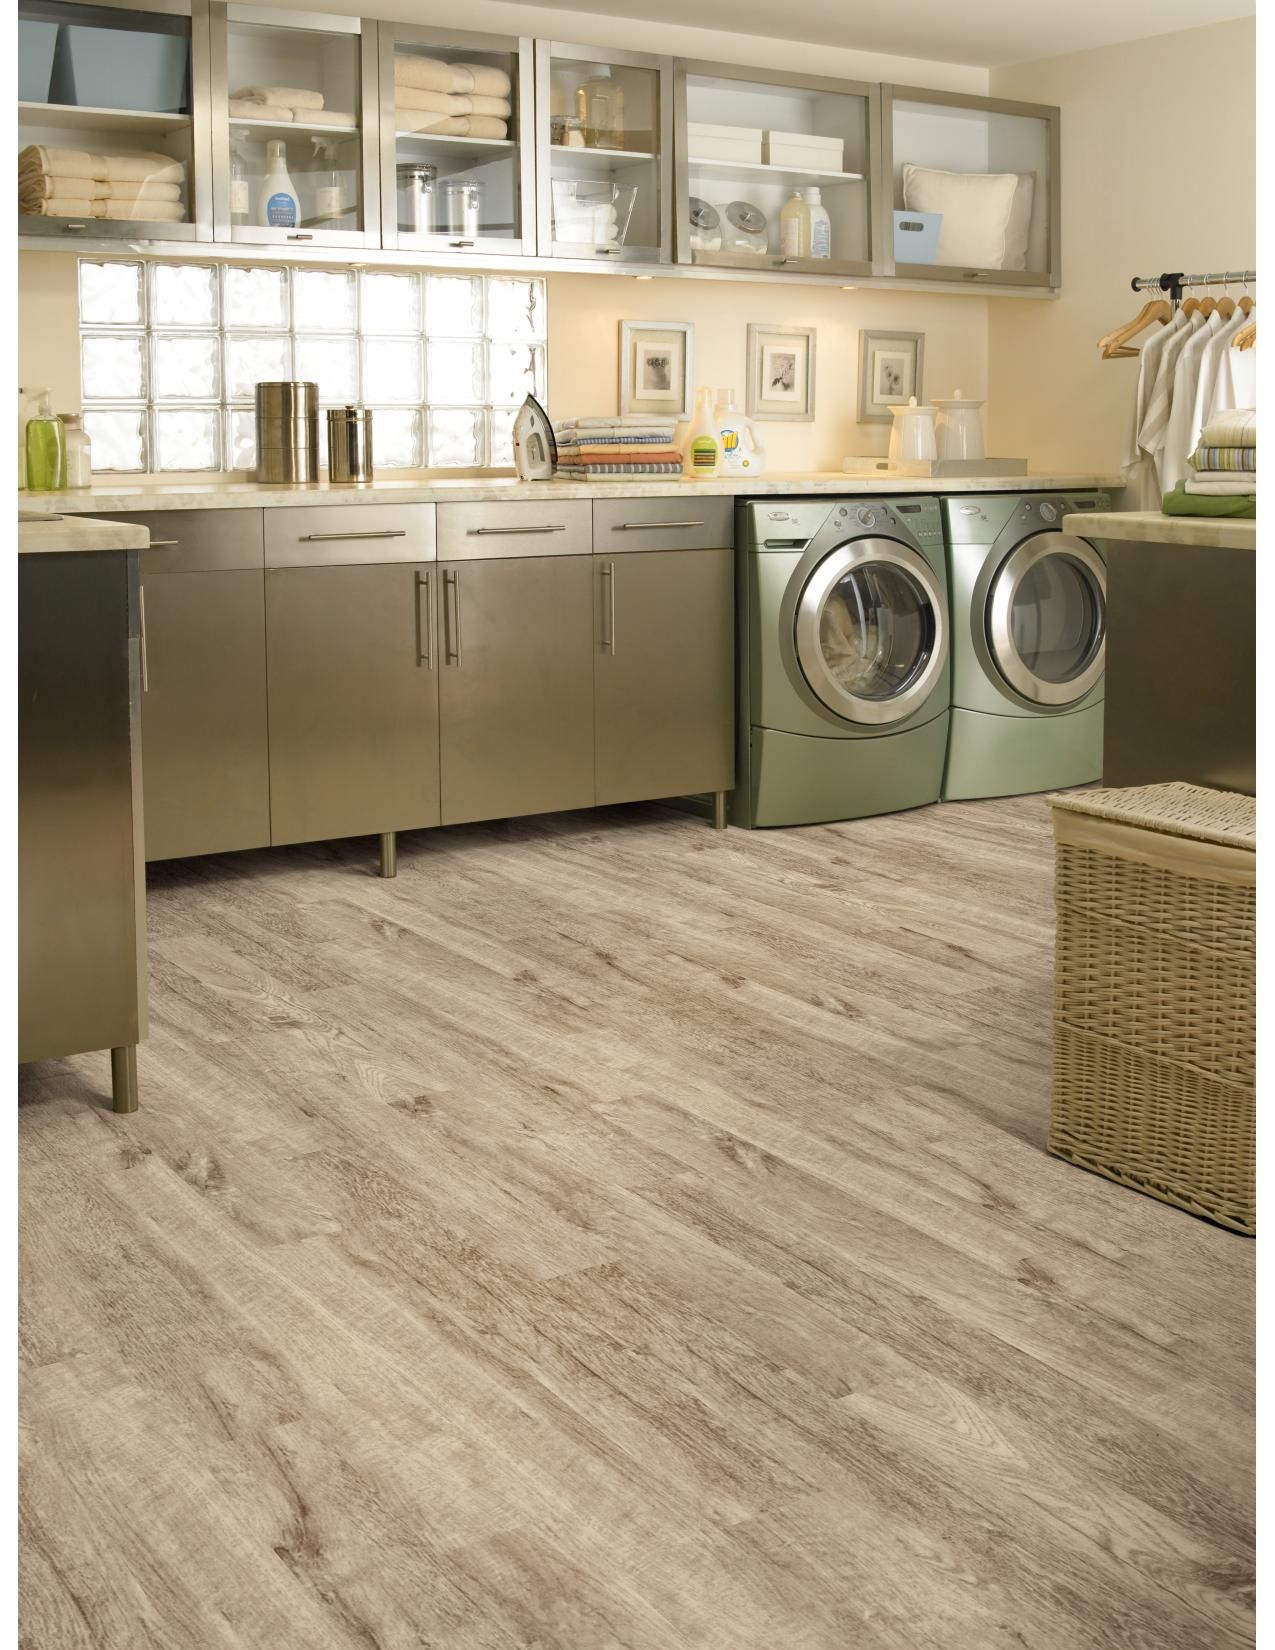 Downs h2o shaw sunwashed flooring from flooringamerica vinyl flooring is great where you need durability and in high moisture areas shop luxury vinyl tile and plank flooring at carpet one dailygadgetfo Choice Image